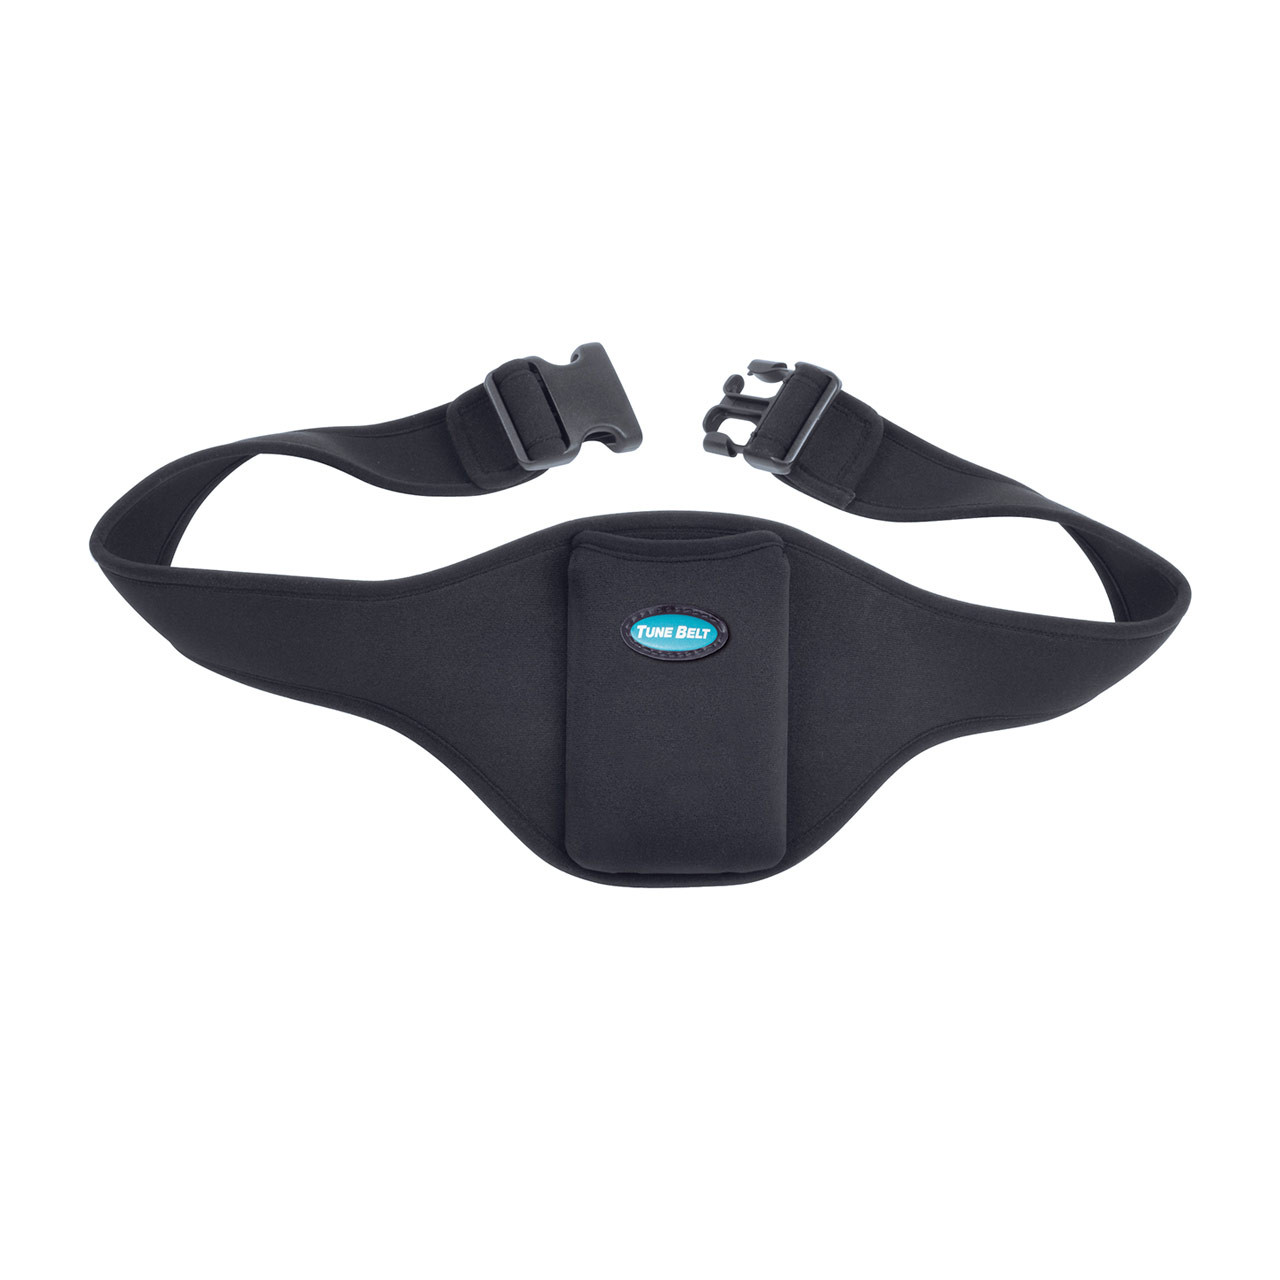 M-Belt Fitness Class//Public Speaking//Theatre Mic Belt for Fitness Instructors Vertical Microphone Transmitter Carrier Belt Durable and Machine Washable